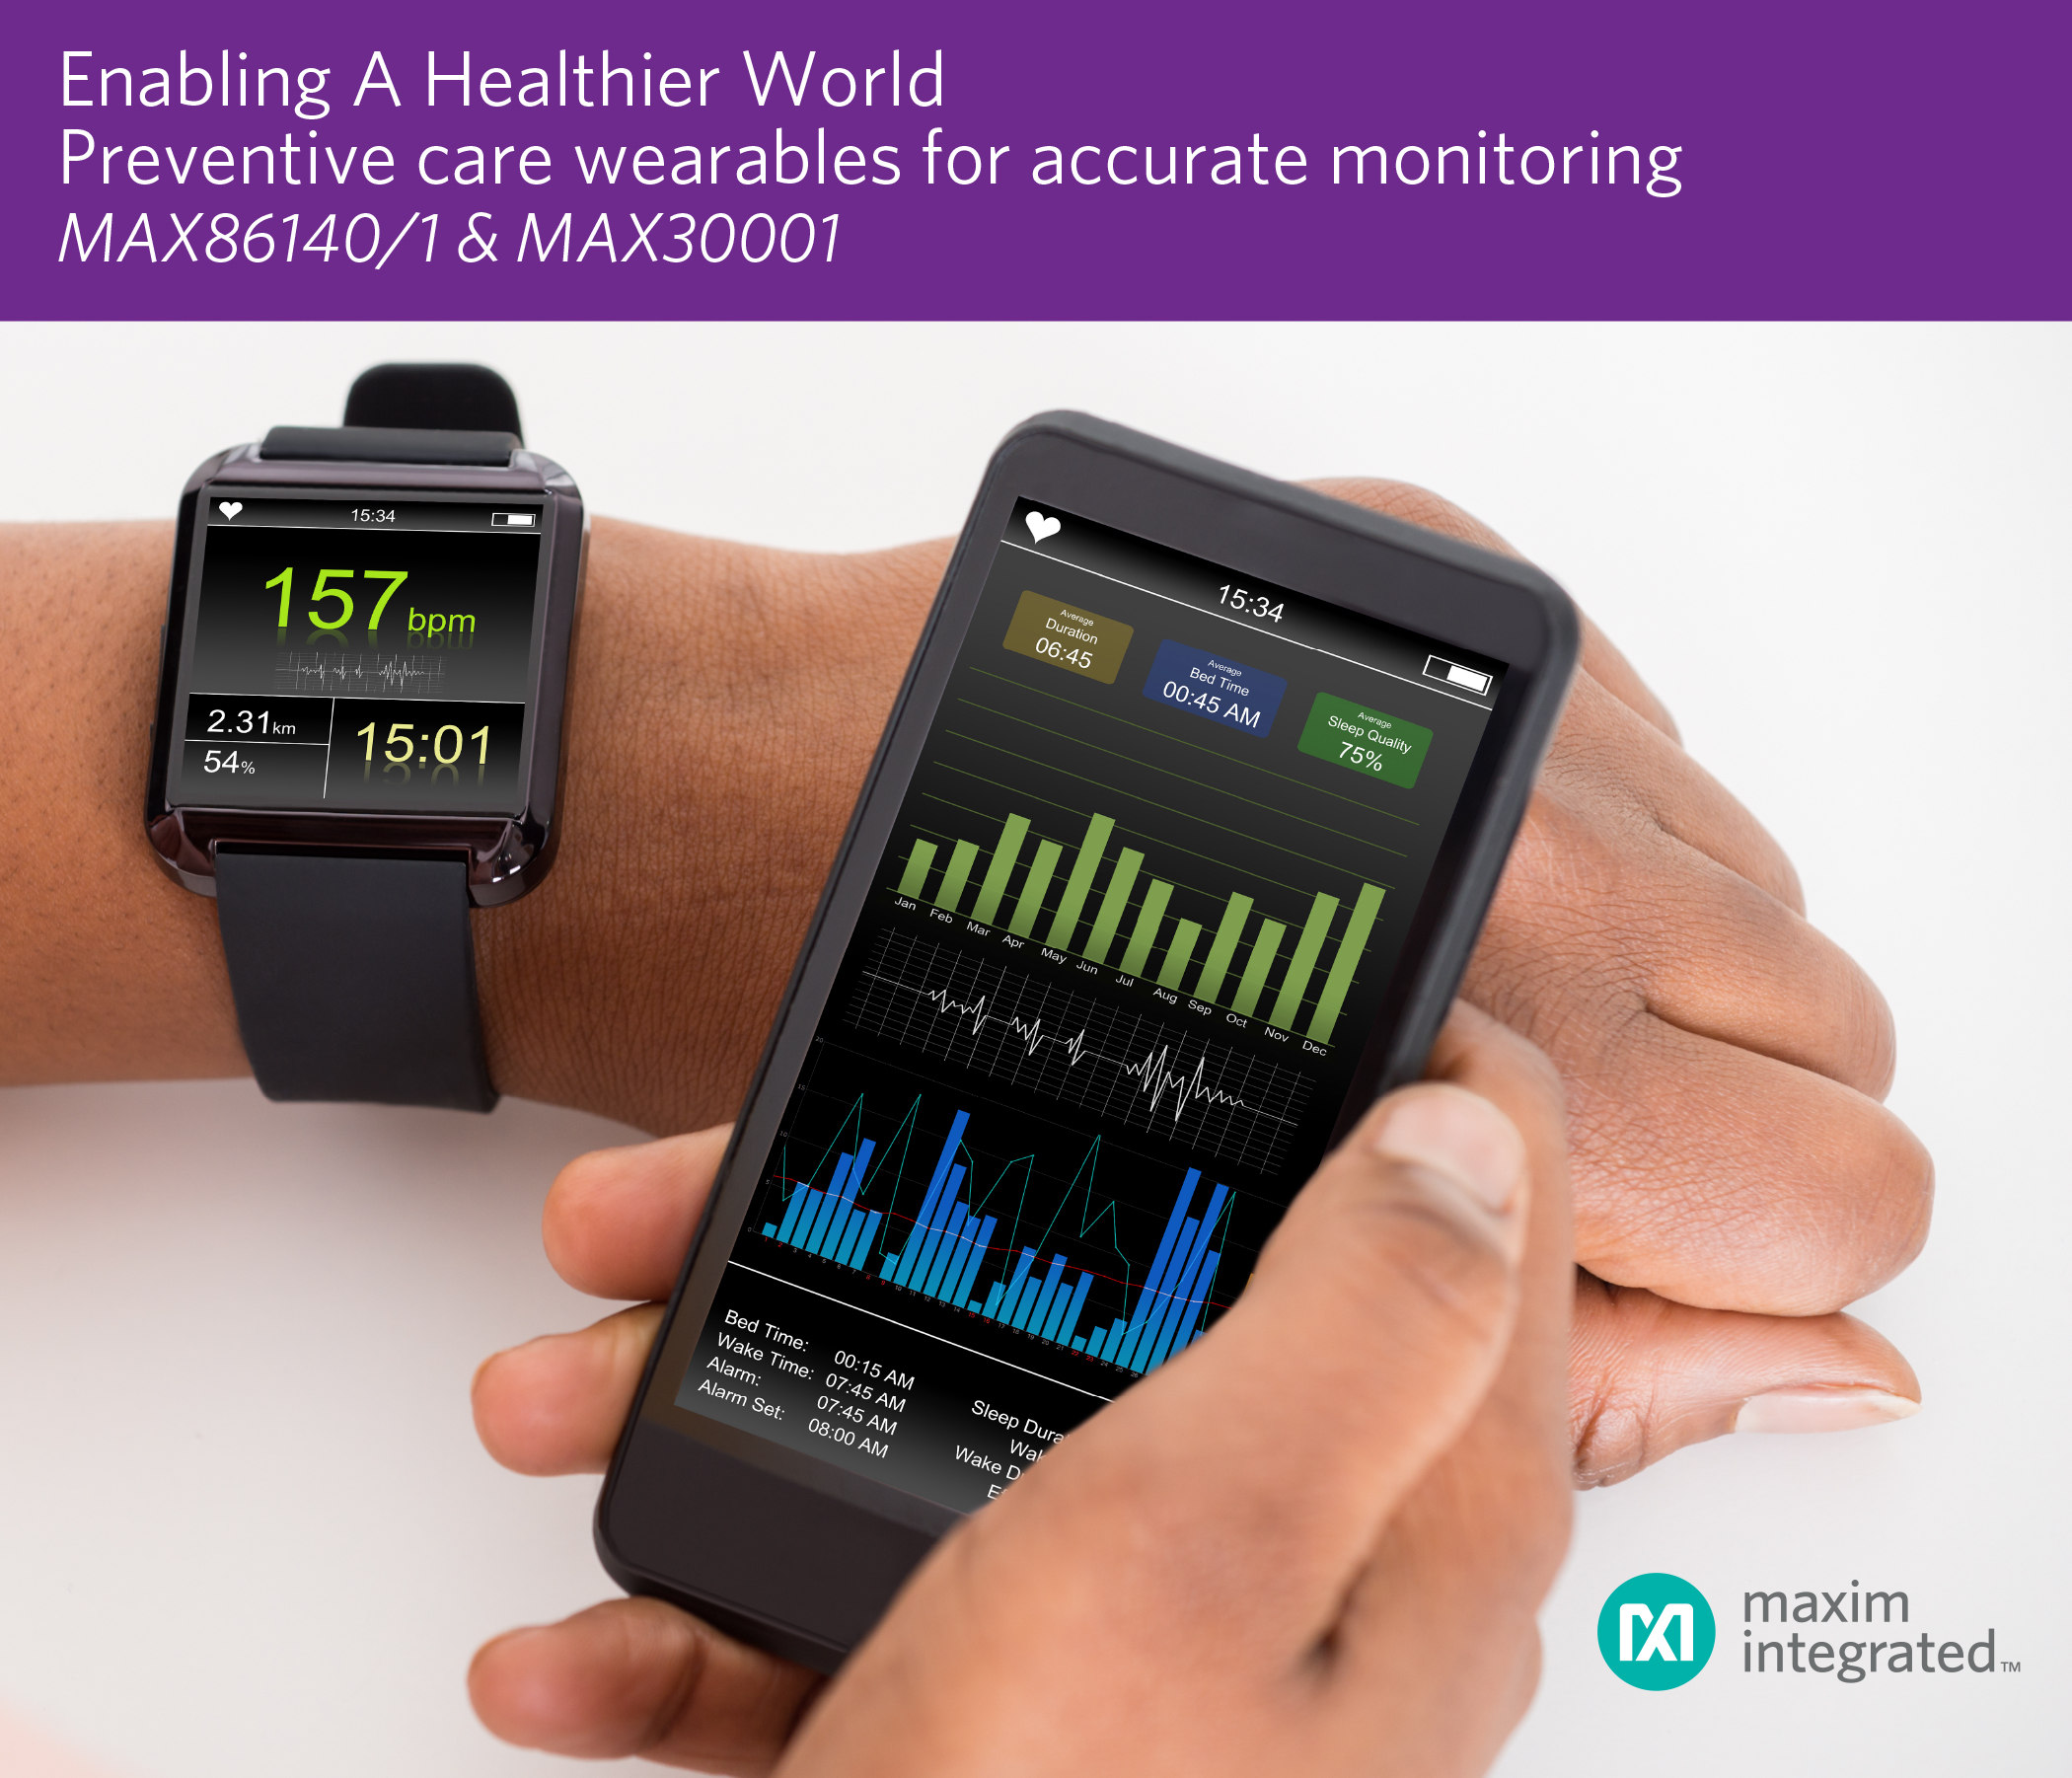 Optical Pulse Oximeter/Heart Rate Sensors and ECG & BioZ AFE Deliver Accurate, Continuous Monitoring in Compact, Low-Power Solutions